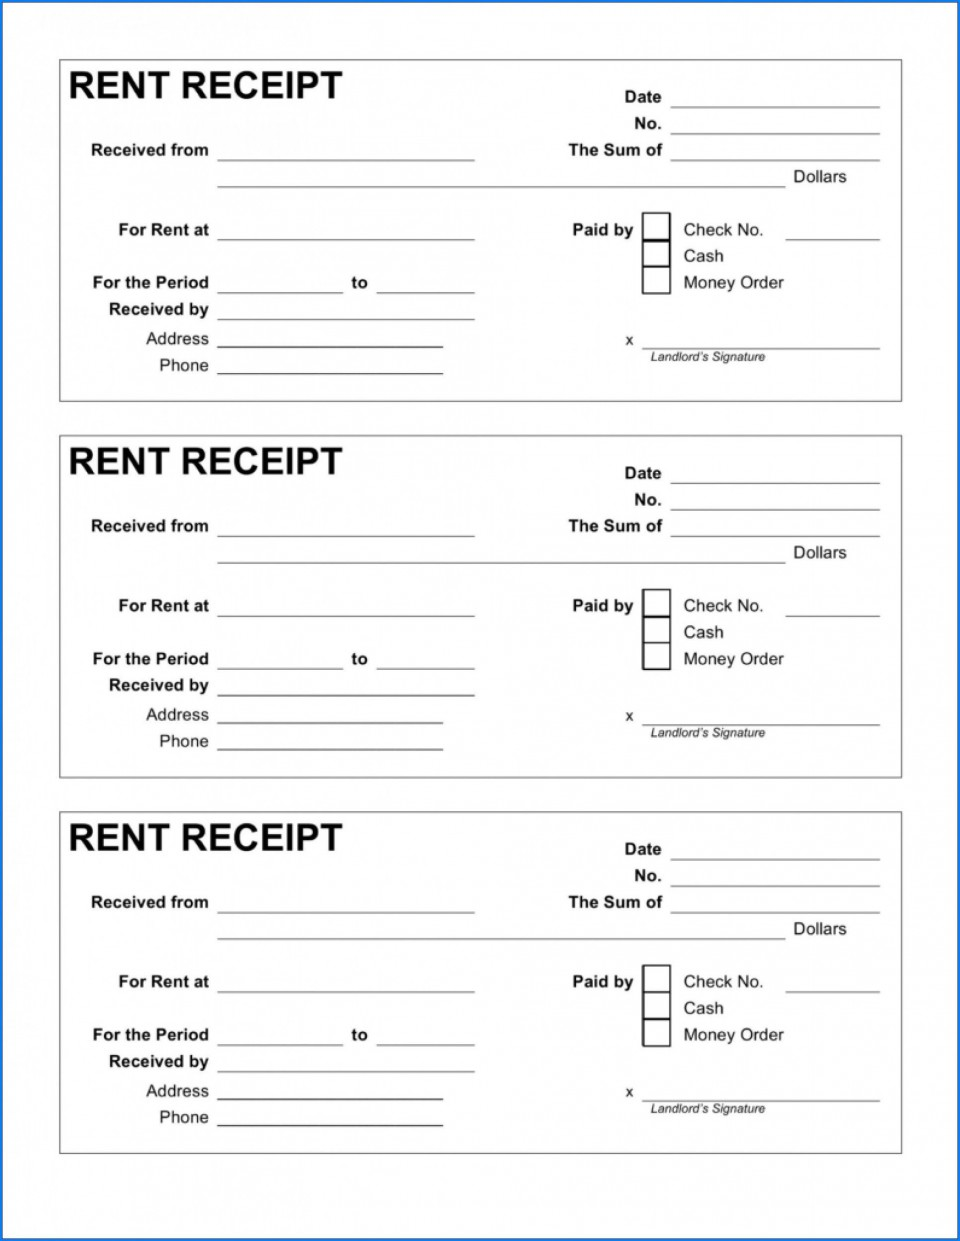 004 Beautiful House Rent Receipt Sample Doc Example  Template India Bill Format Word Document Pdf Download960